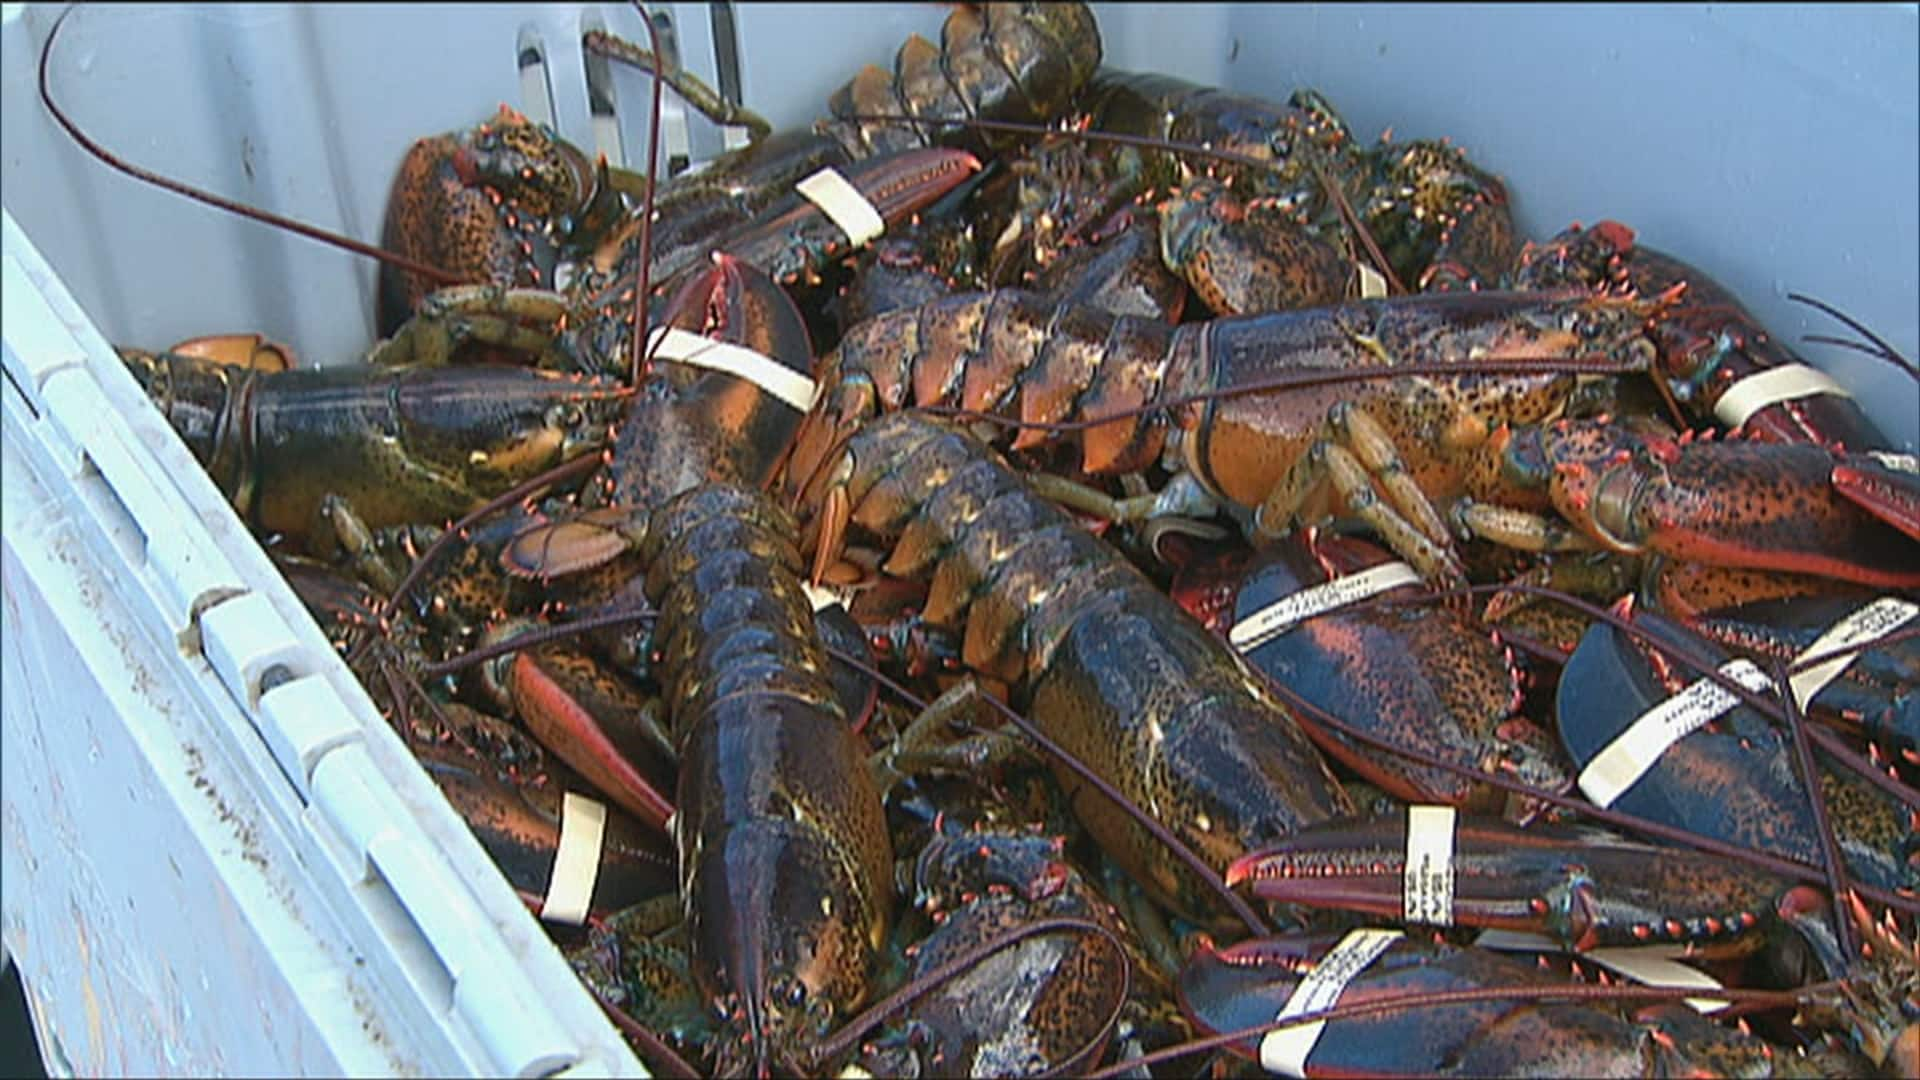 Despite tension over right whale deaths, Maine lobster group backs ...